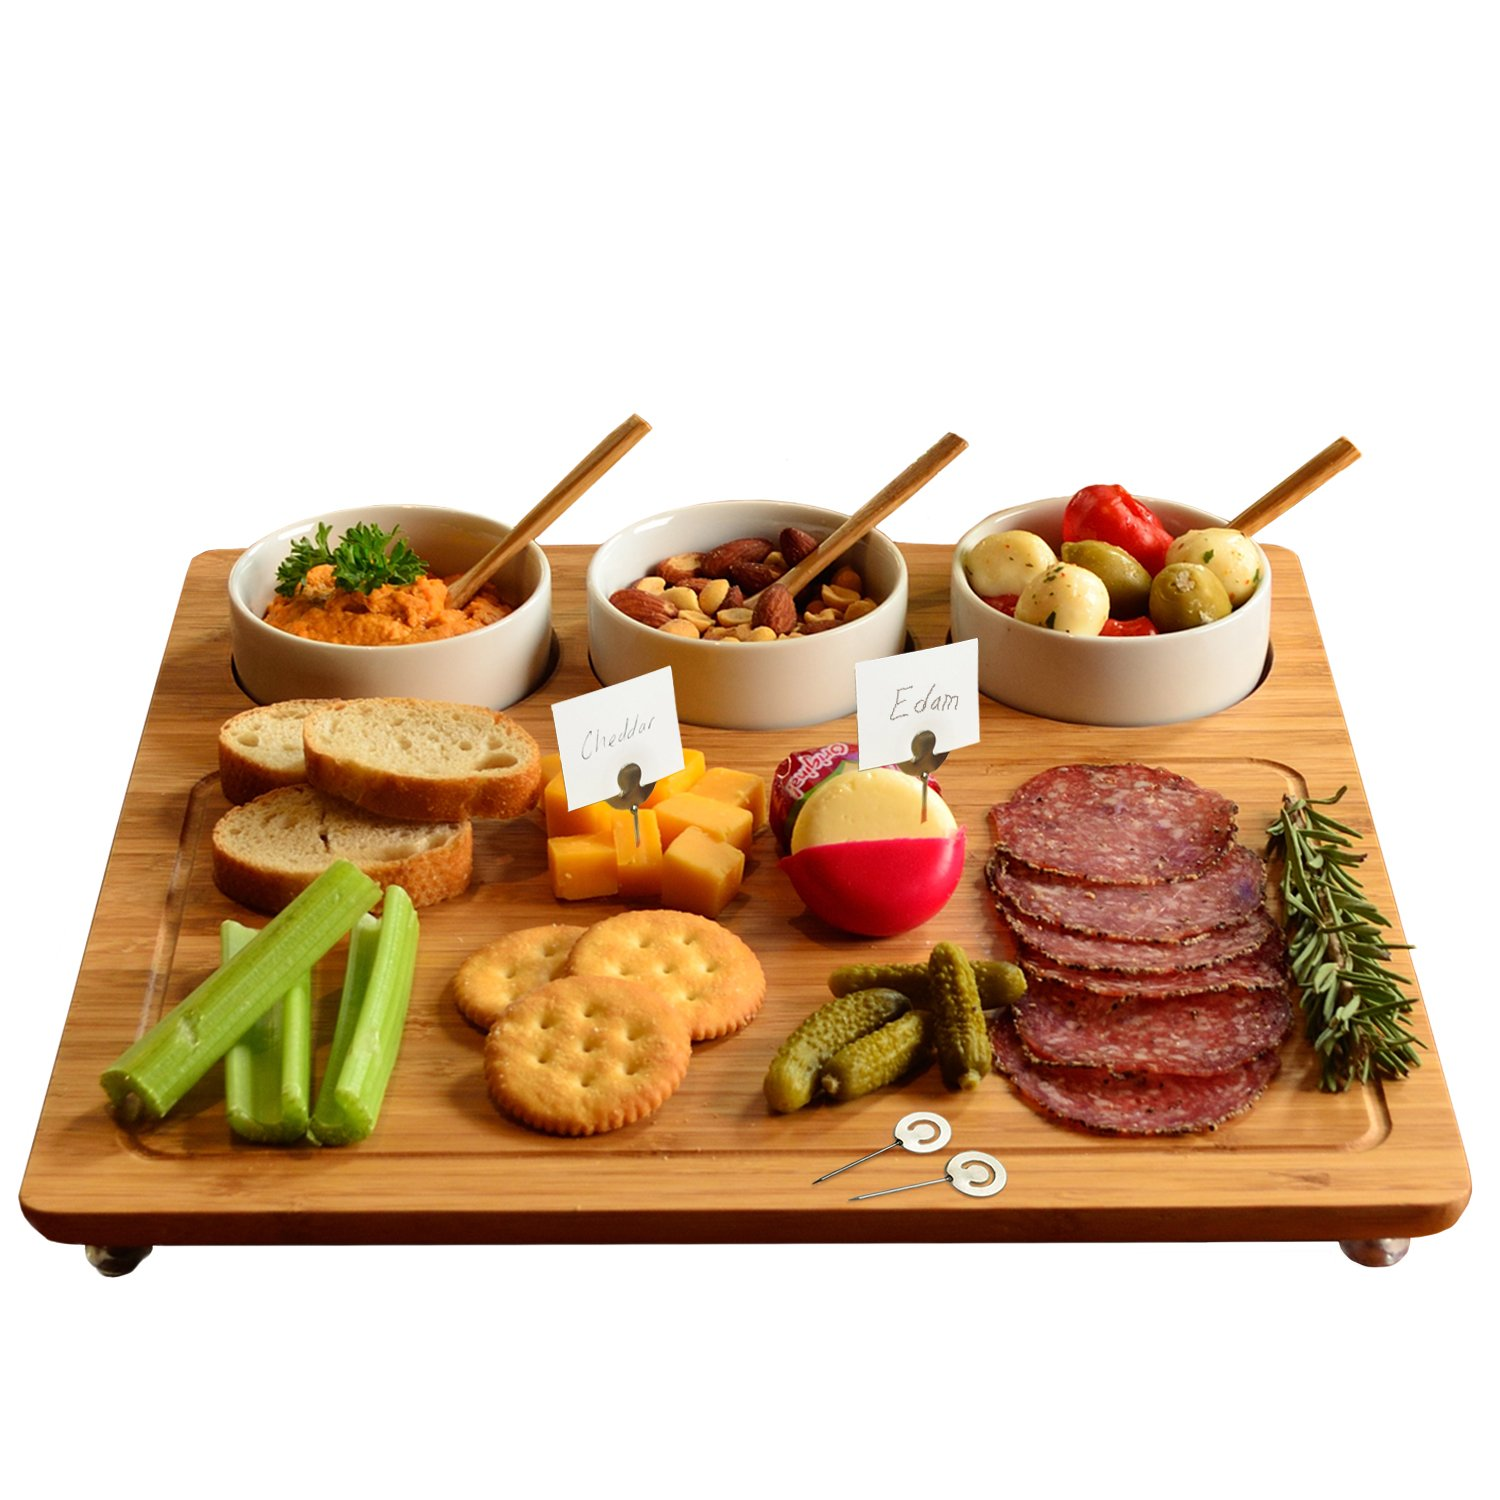 Picnic at Ascot Original Bamboo Cheese Board/Charcuterie Platter - Includes 3 Ceramic Bowls with Bamboo Spoons - Cheese Markers - Designed and Quality Checked in the USA